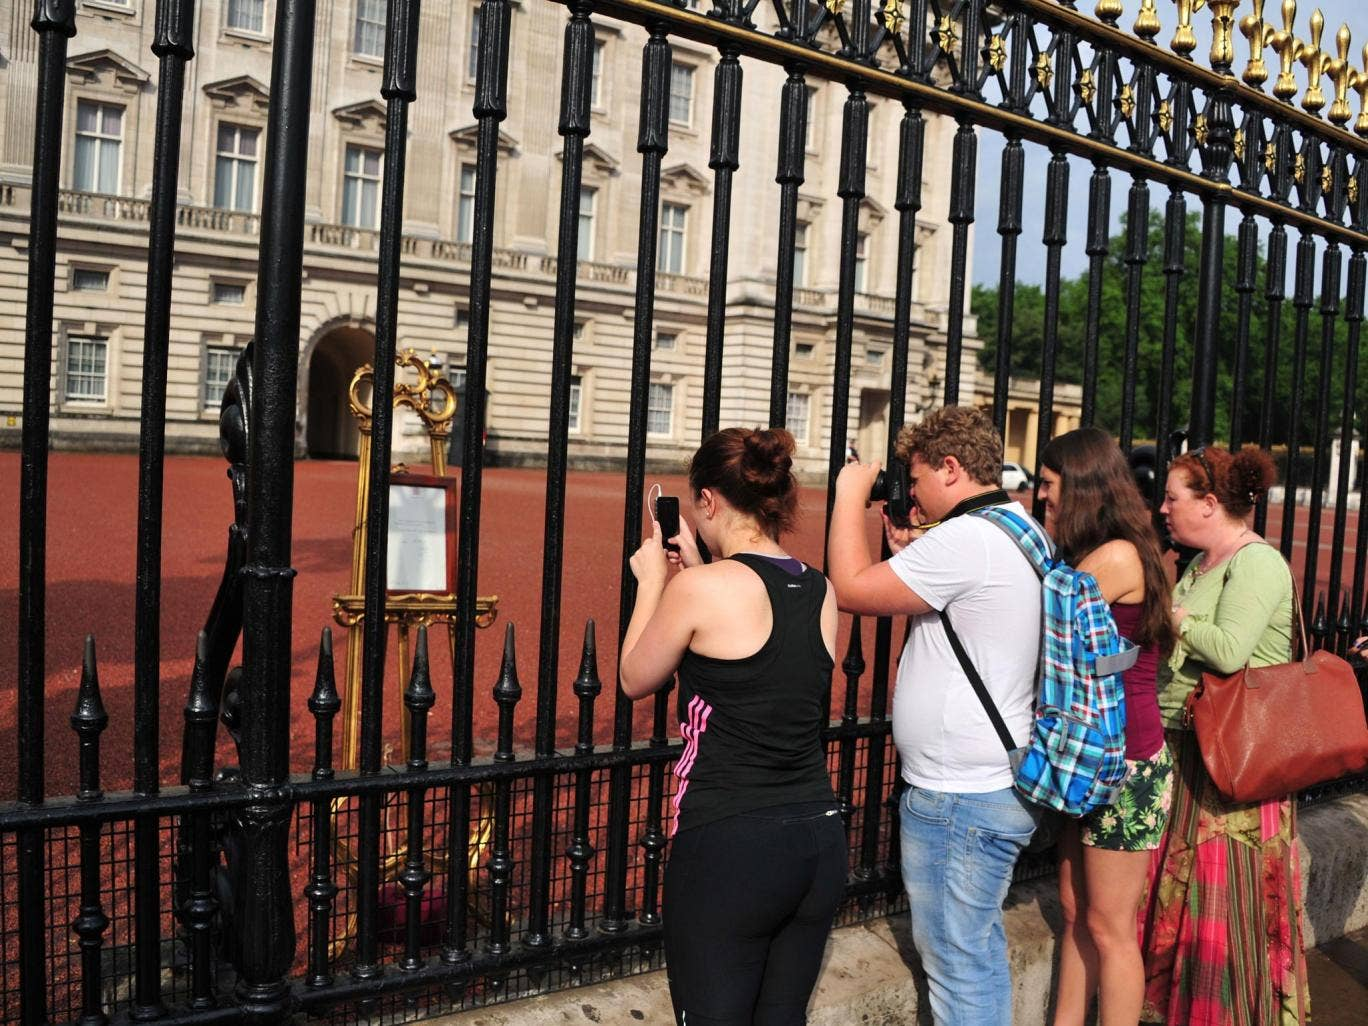 People queue to see the Easel displaying the Royal Birth announcement letter at Buckingham Palace